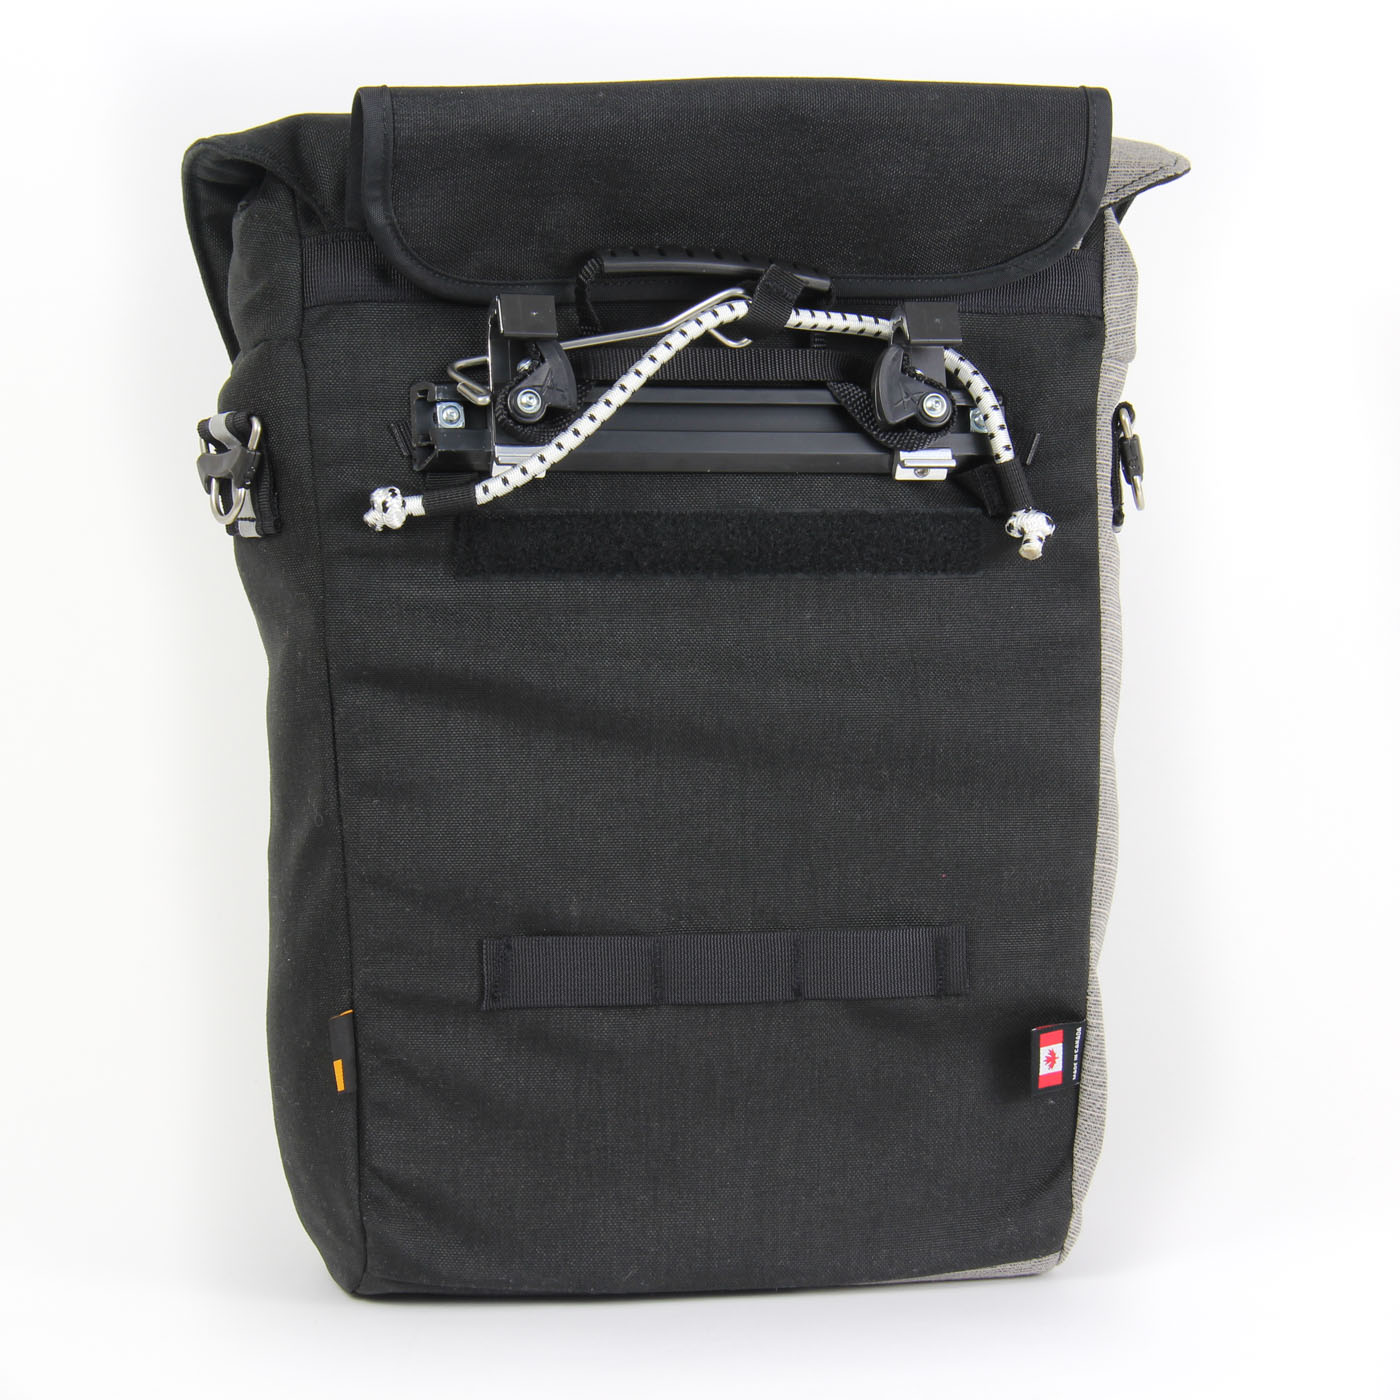 arkel commuter urban pannier review